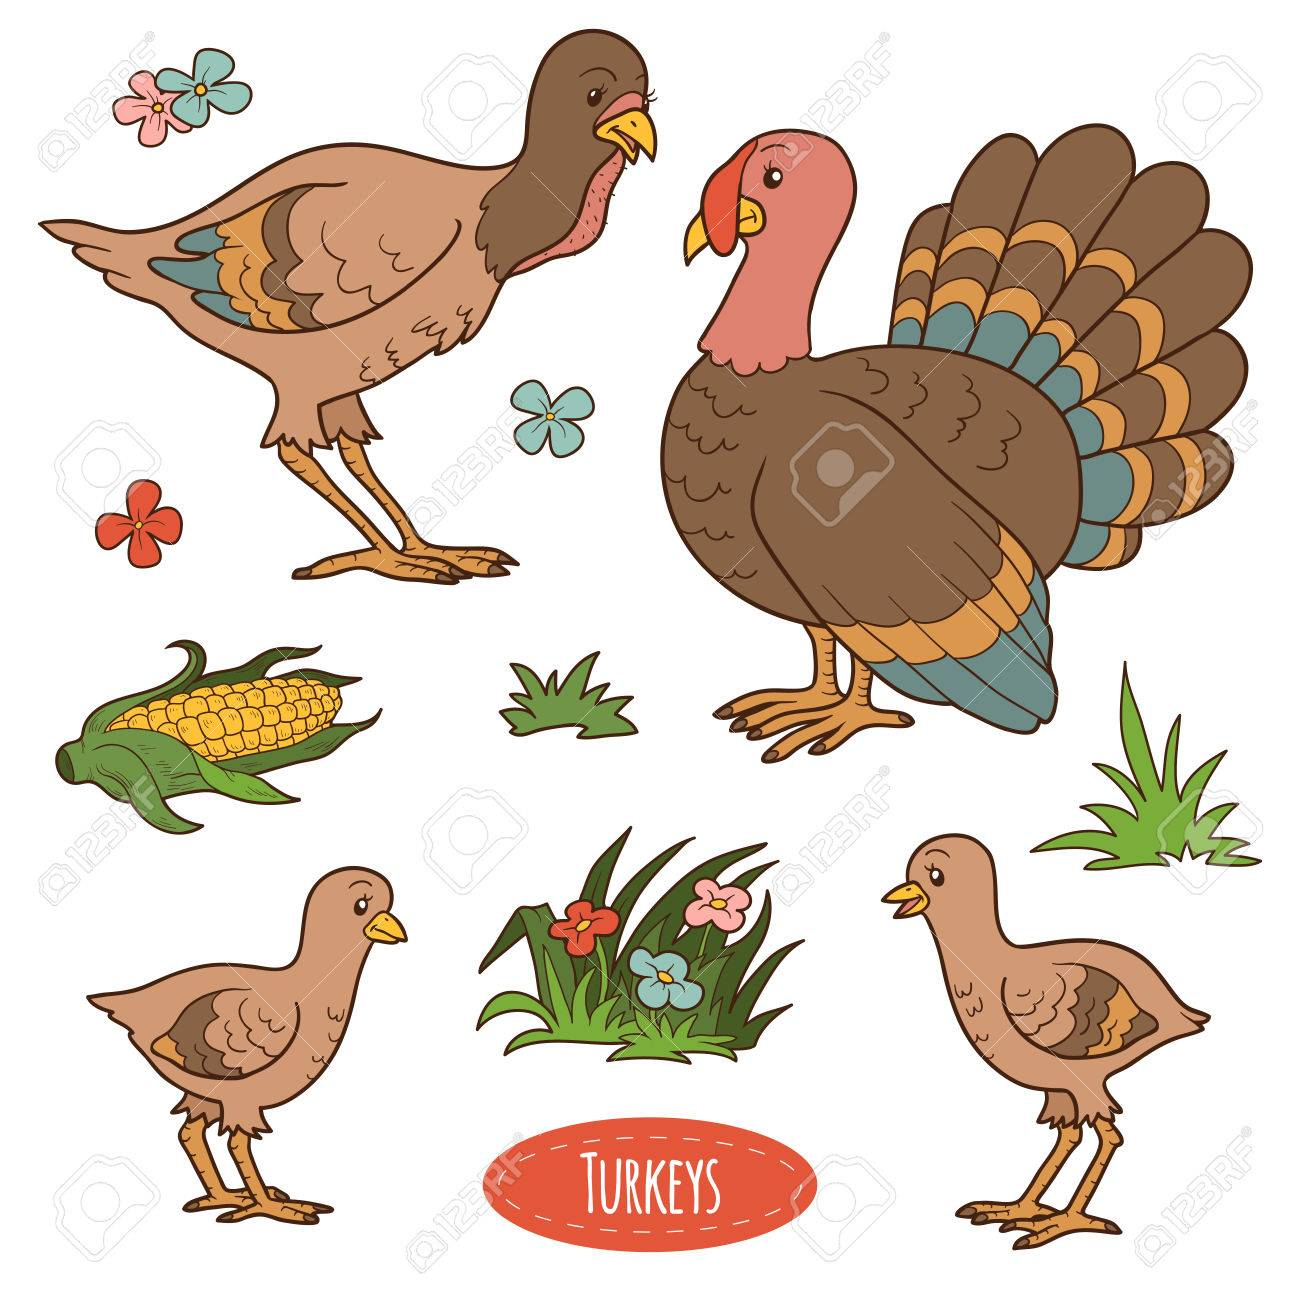 Selecting the most suitable breed of turkeys for